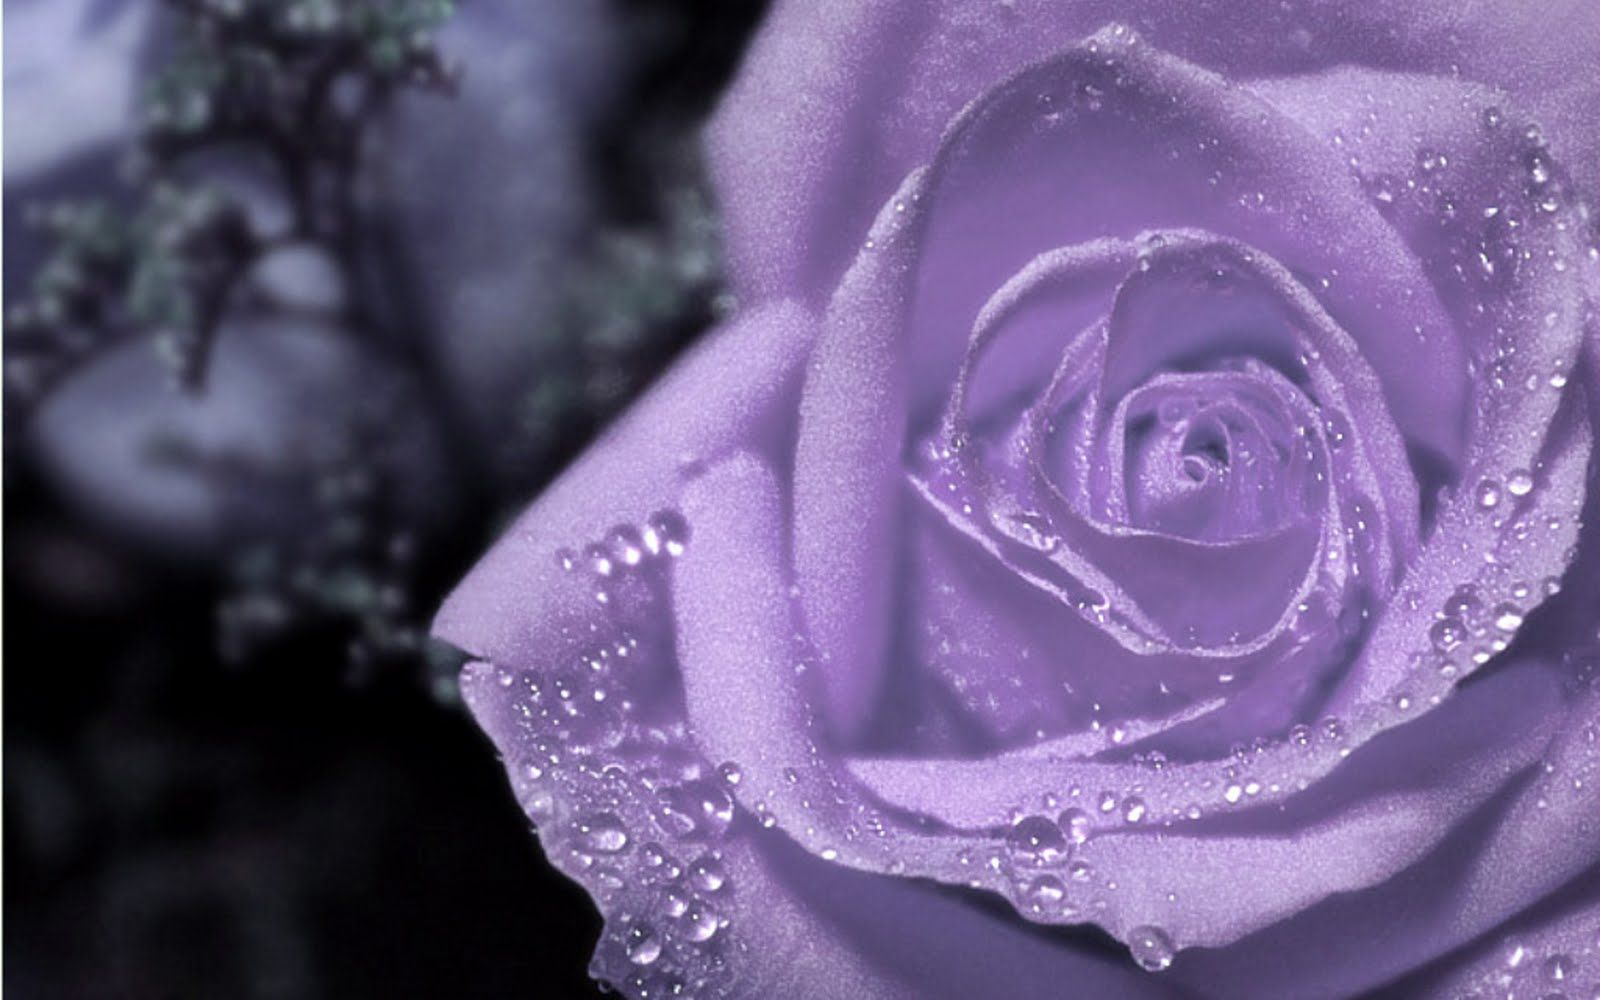 Wallpapers purple the most beautiful flower of world soft rose wallpapers purple the most beautiful flower of world soft rose 1600x1000 izmirmasajfo